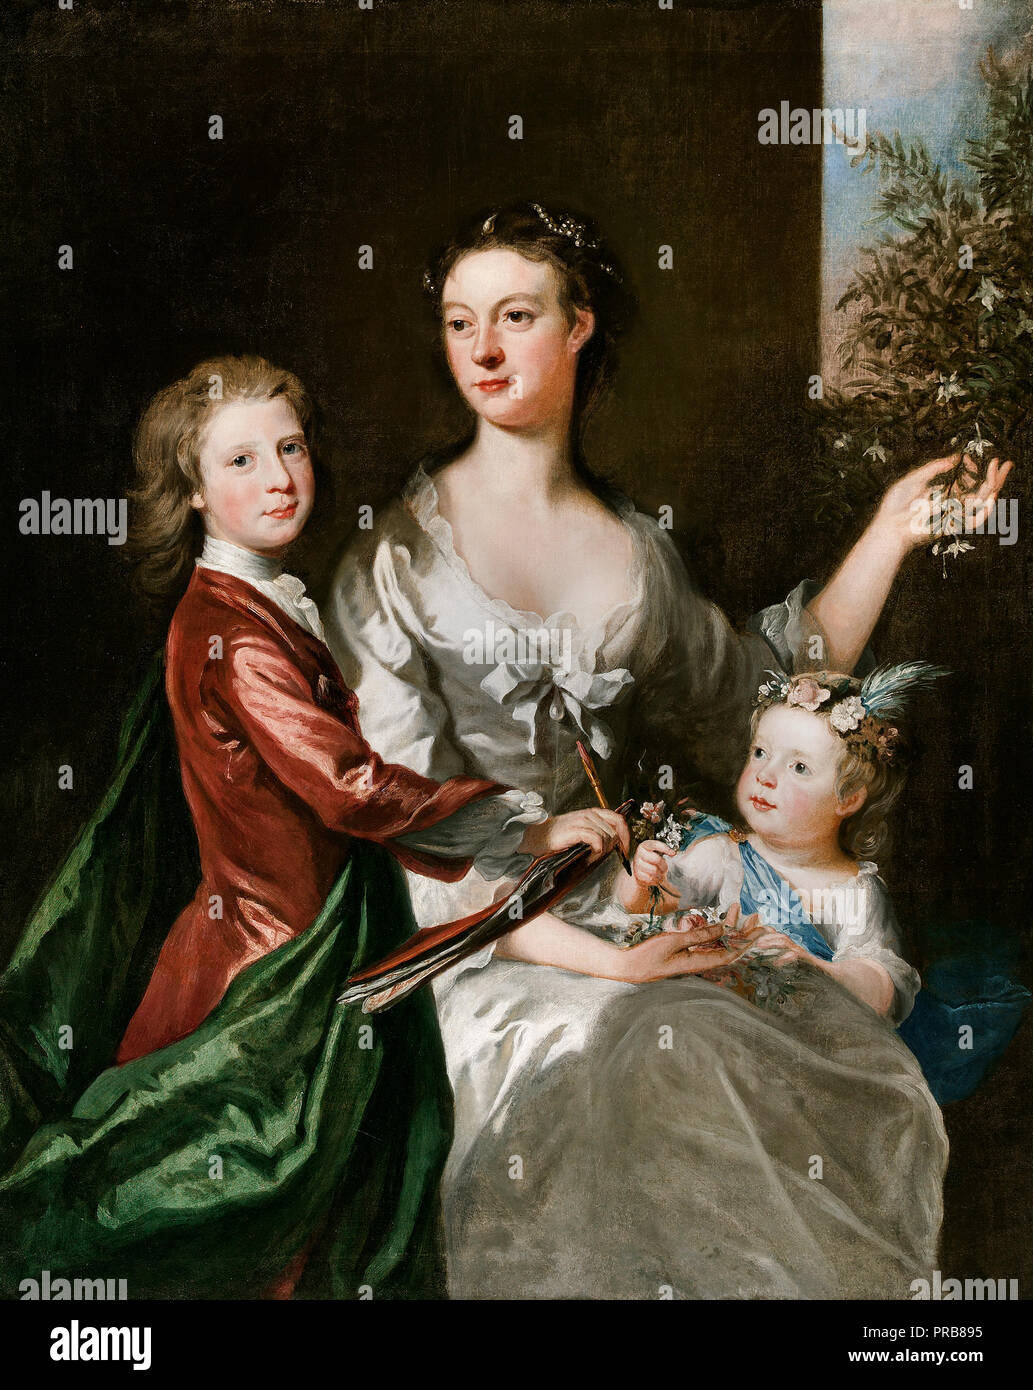 Joseph Highmore, The Artist's Wife Susanna, Son Anthony and Daughter Susanna, Circa 1728, Oil on canvas, Art Gallery of South Australia. - Stock Image